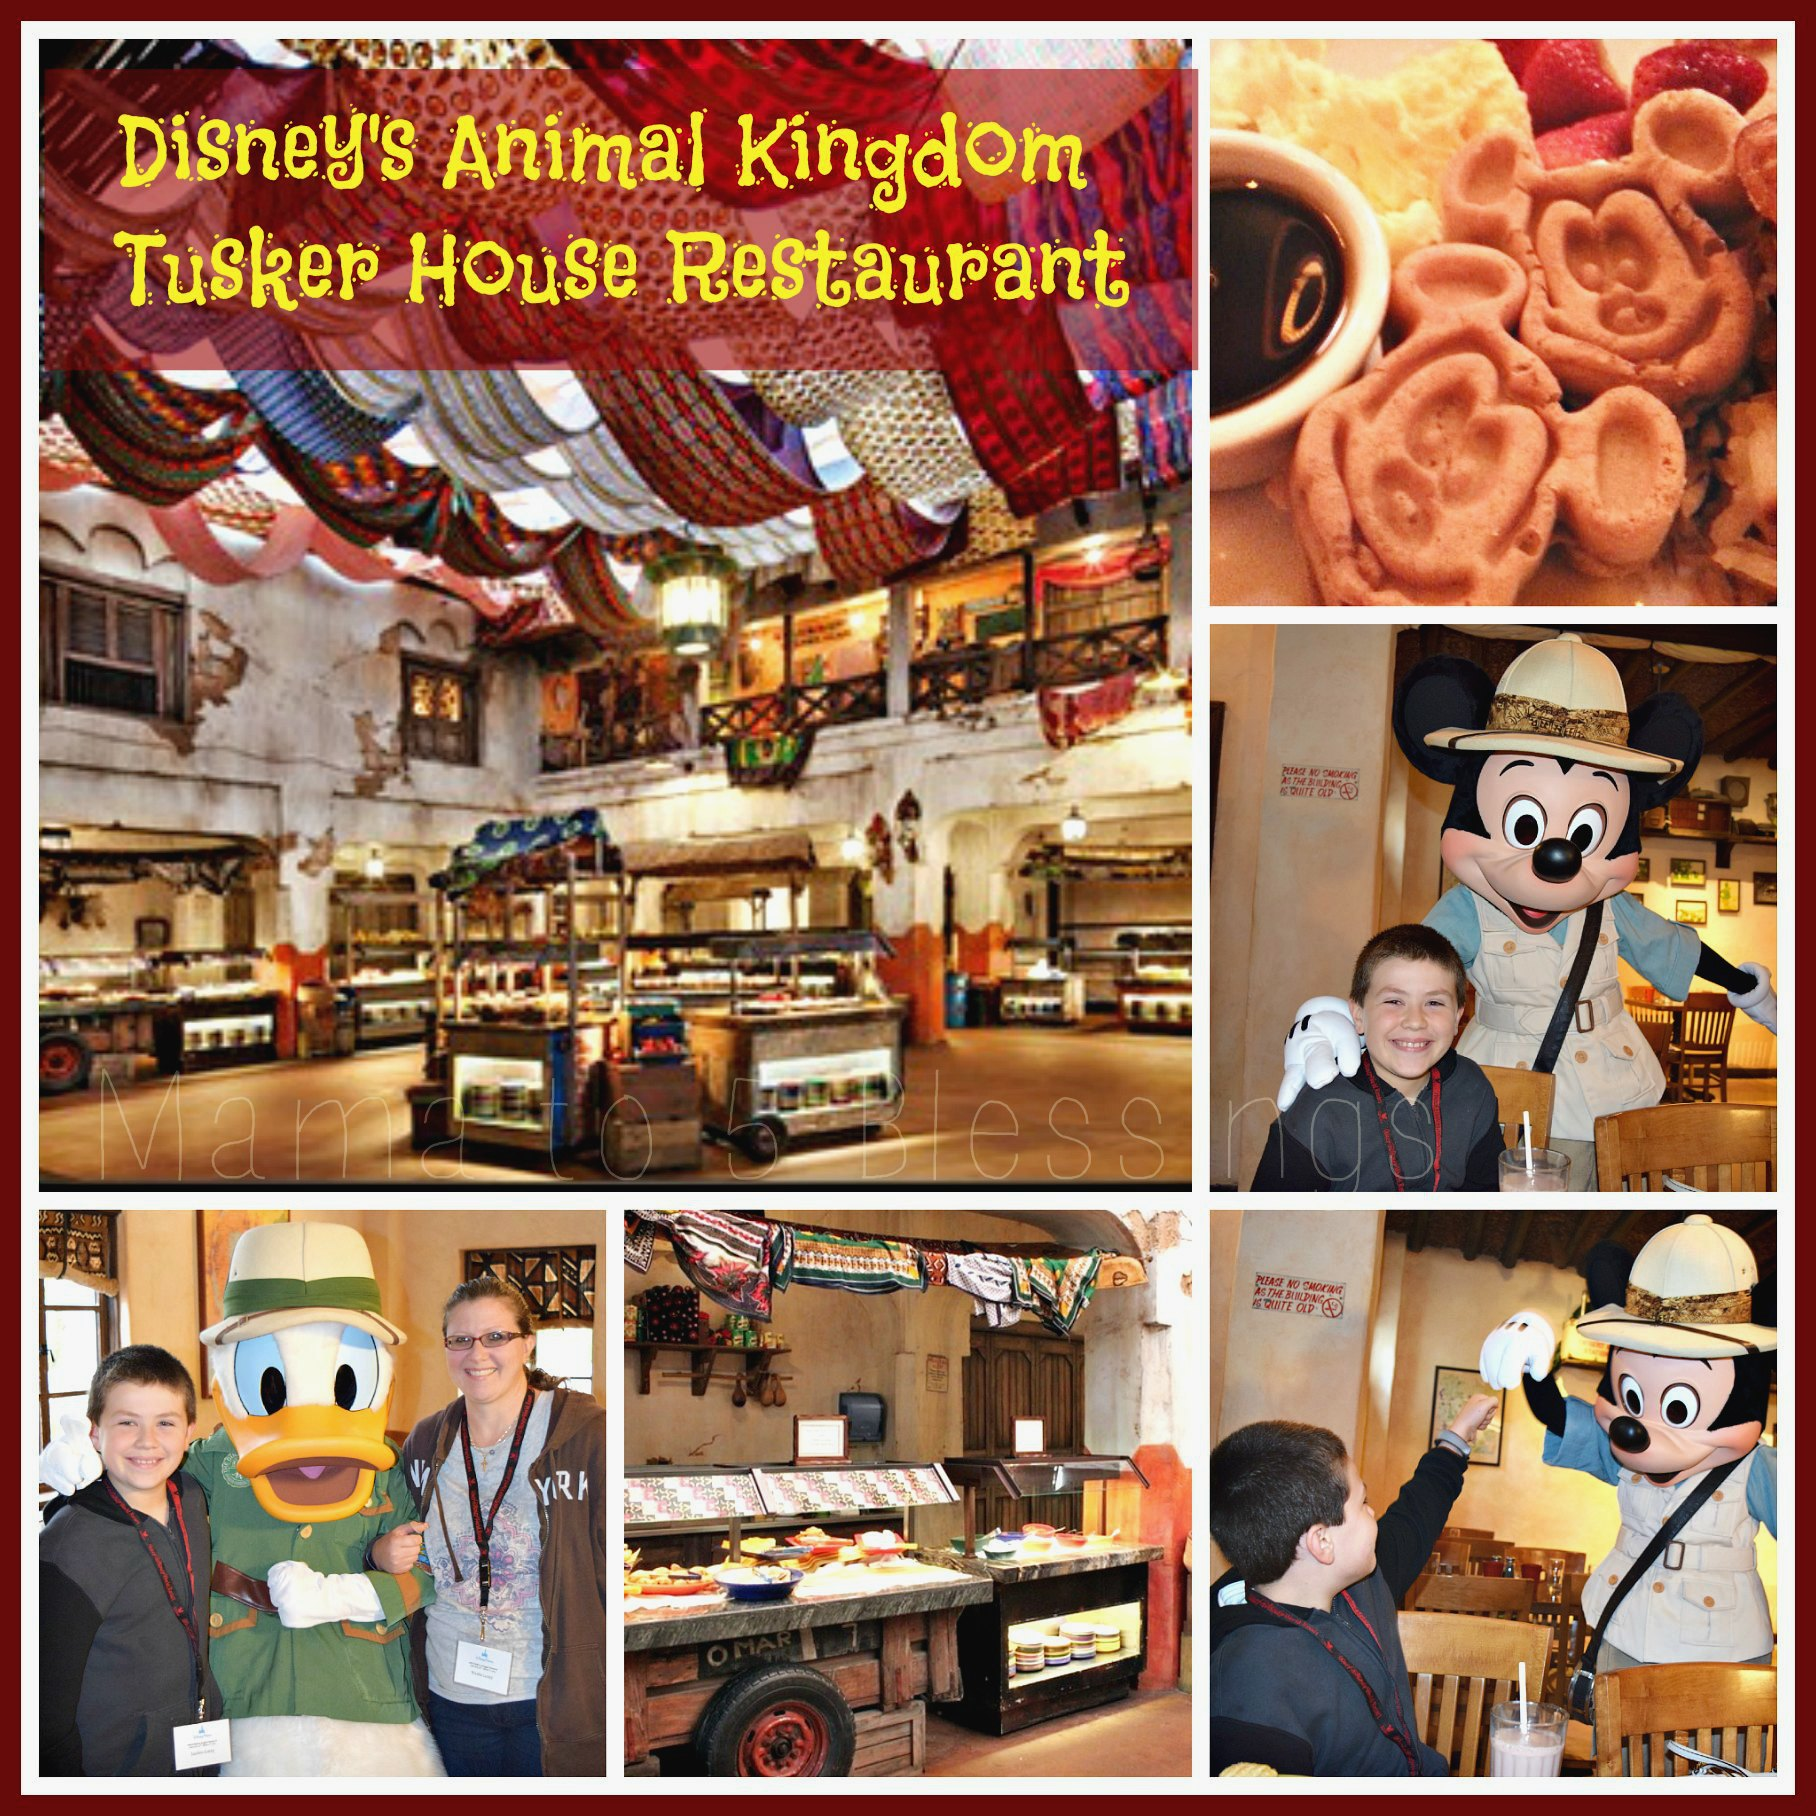 Disney's Tusker House Collage use a